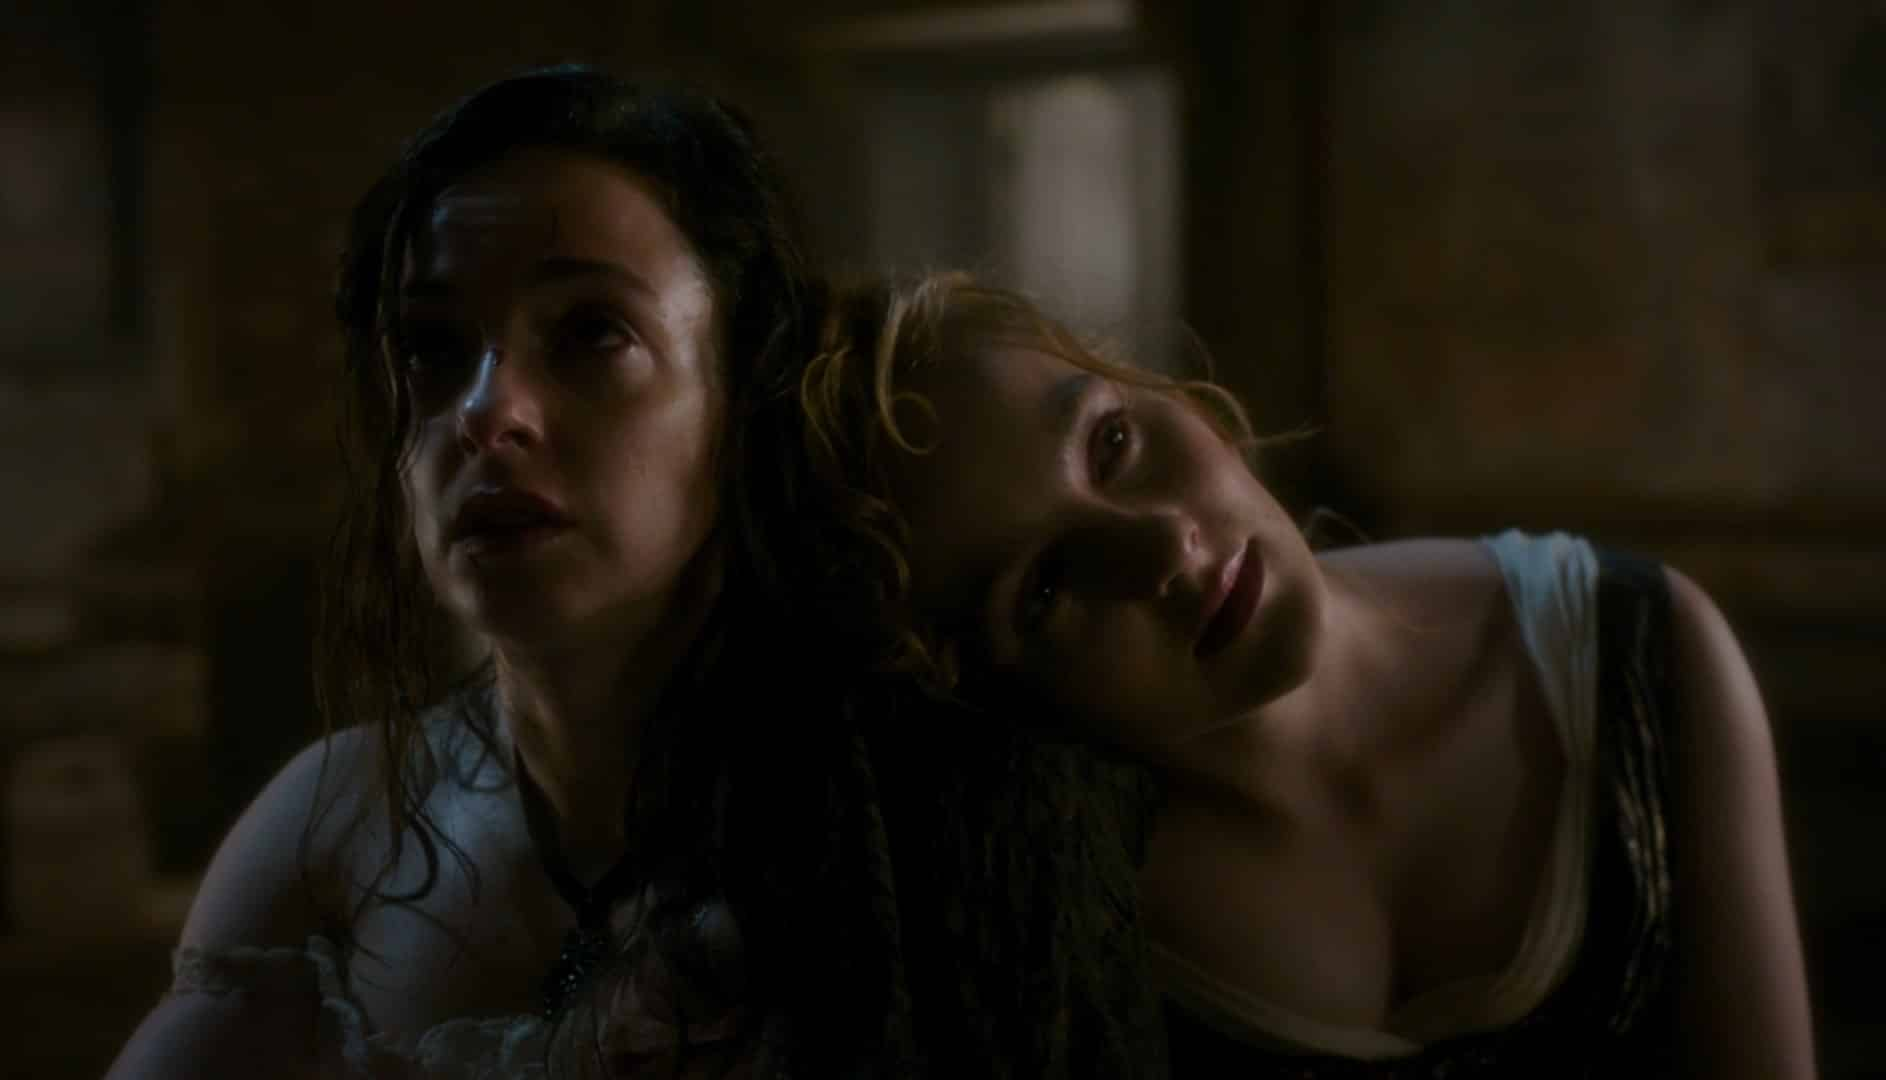 Amalia and Penance leaning on one another